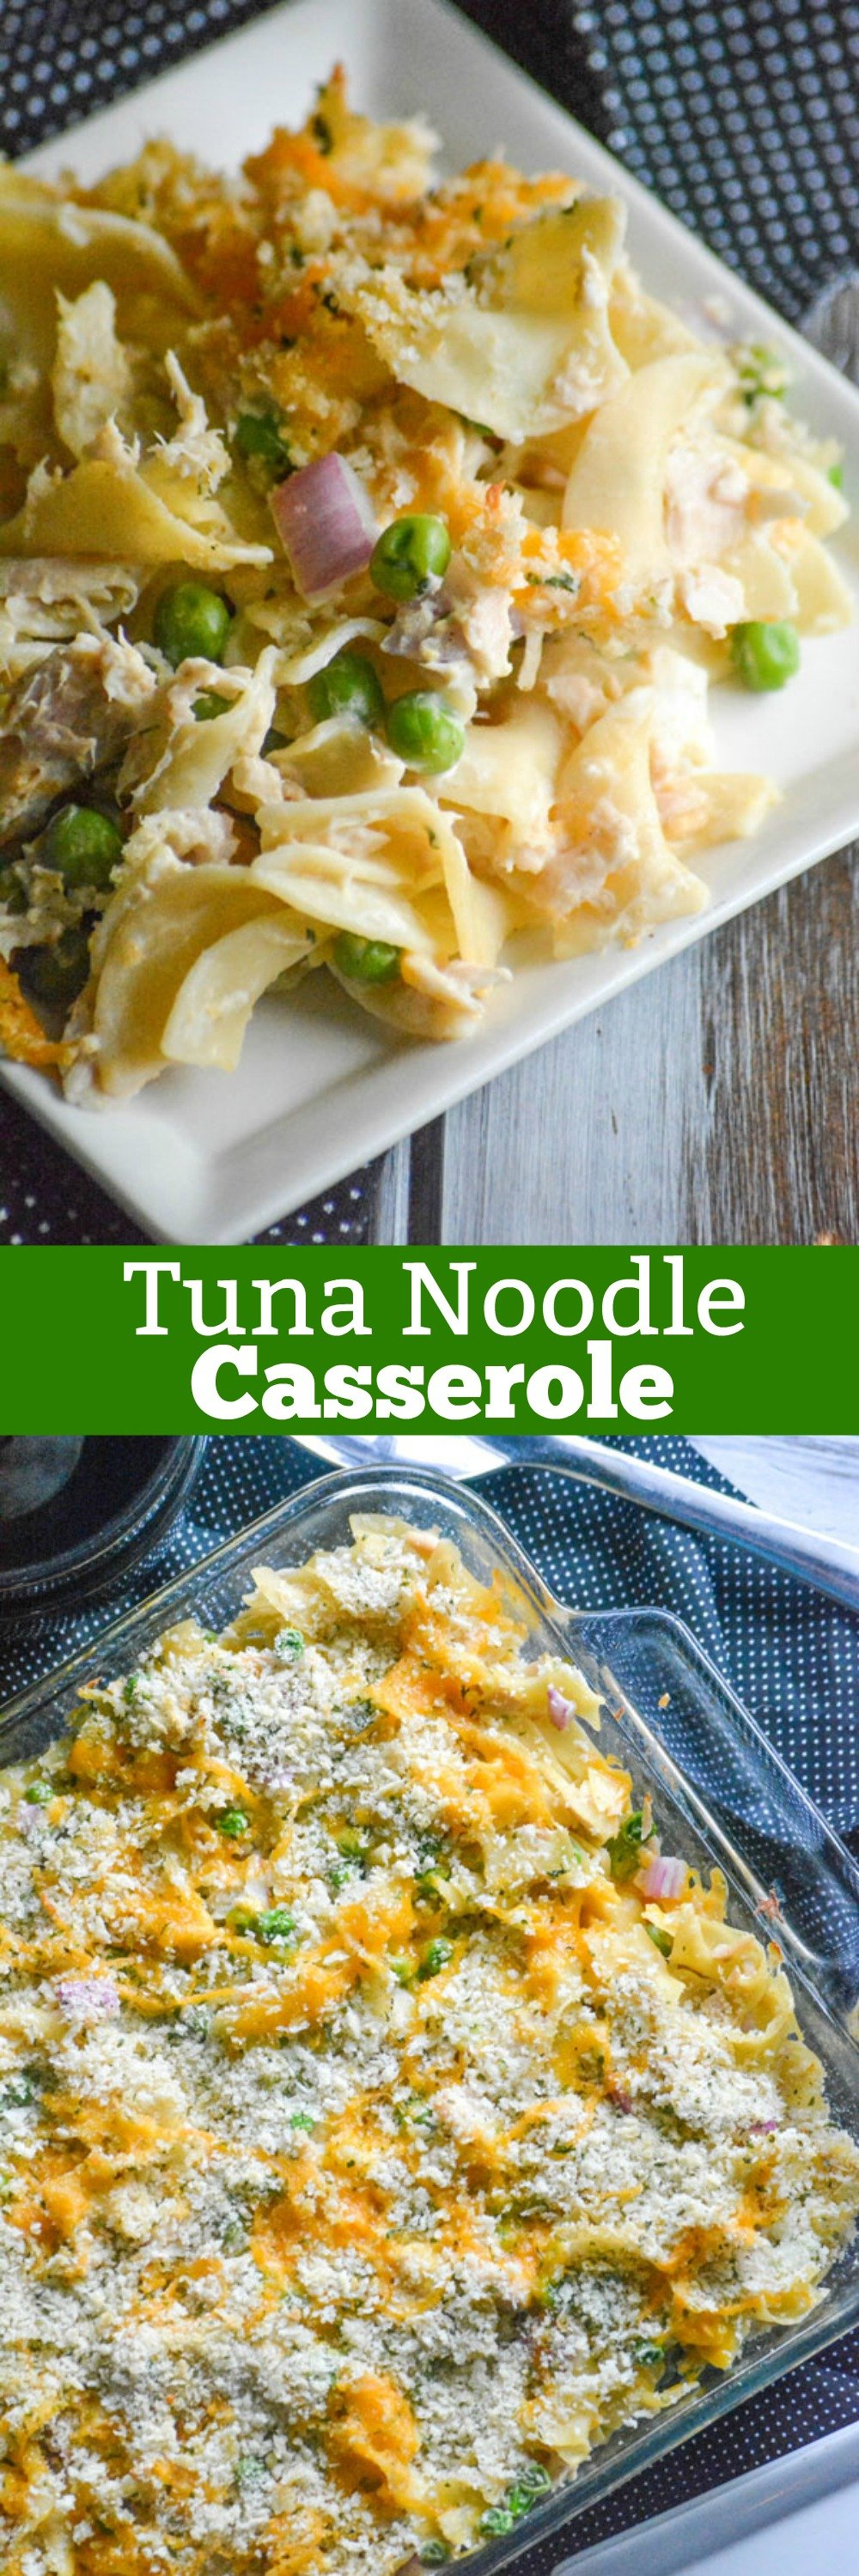 Sometimes I want a lightened up casserole, that's still hearty- which is where this Creamy Tuna Noodle Casserole comes in. Served hot or cold, it's an easy dinner the whole family looks forward to that can also serve a crowd.